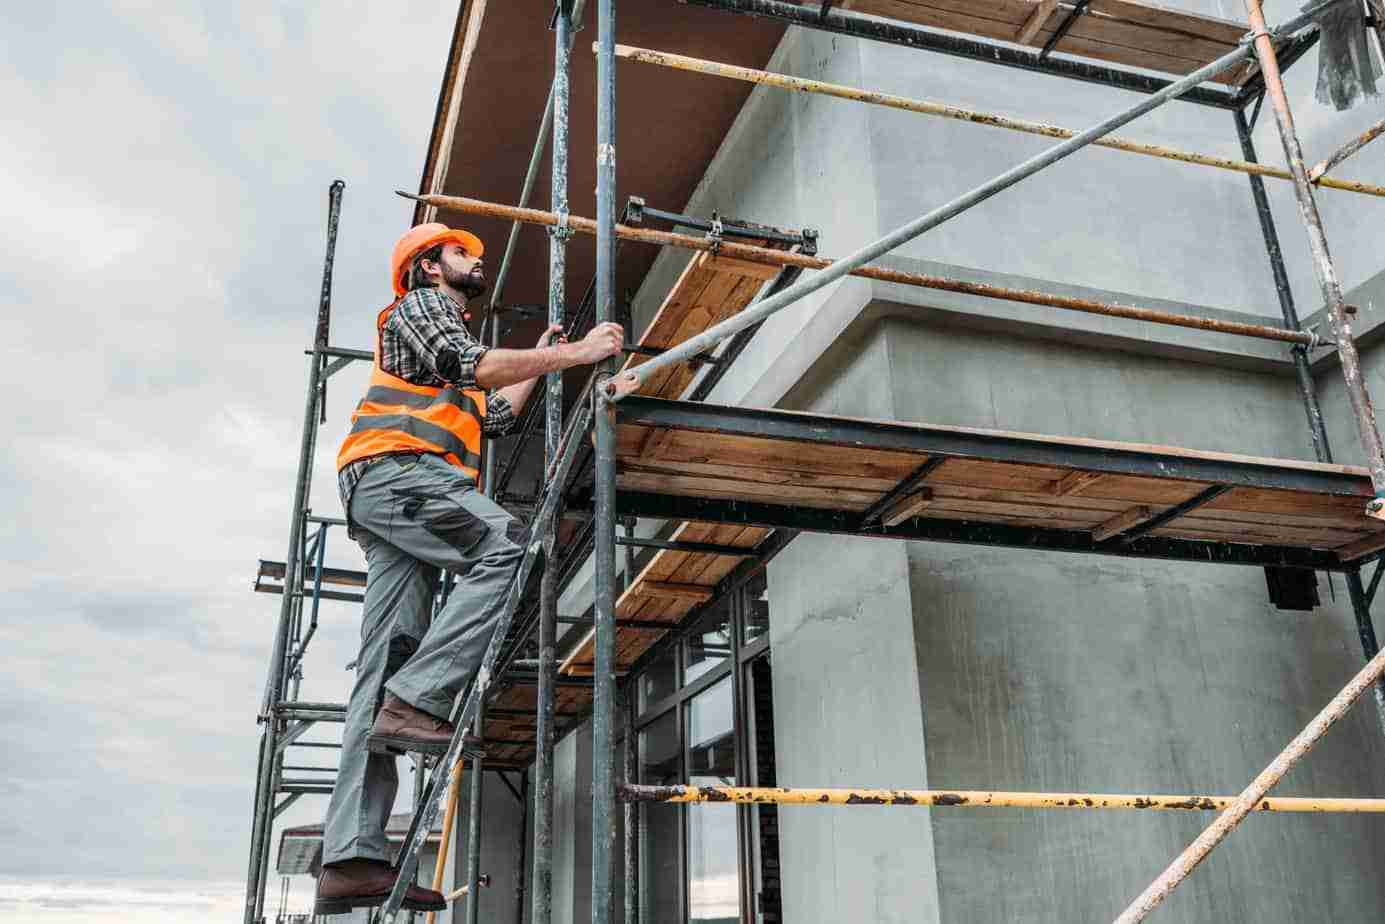 What scaffolding holds more weight?